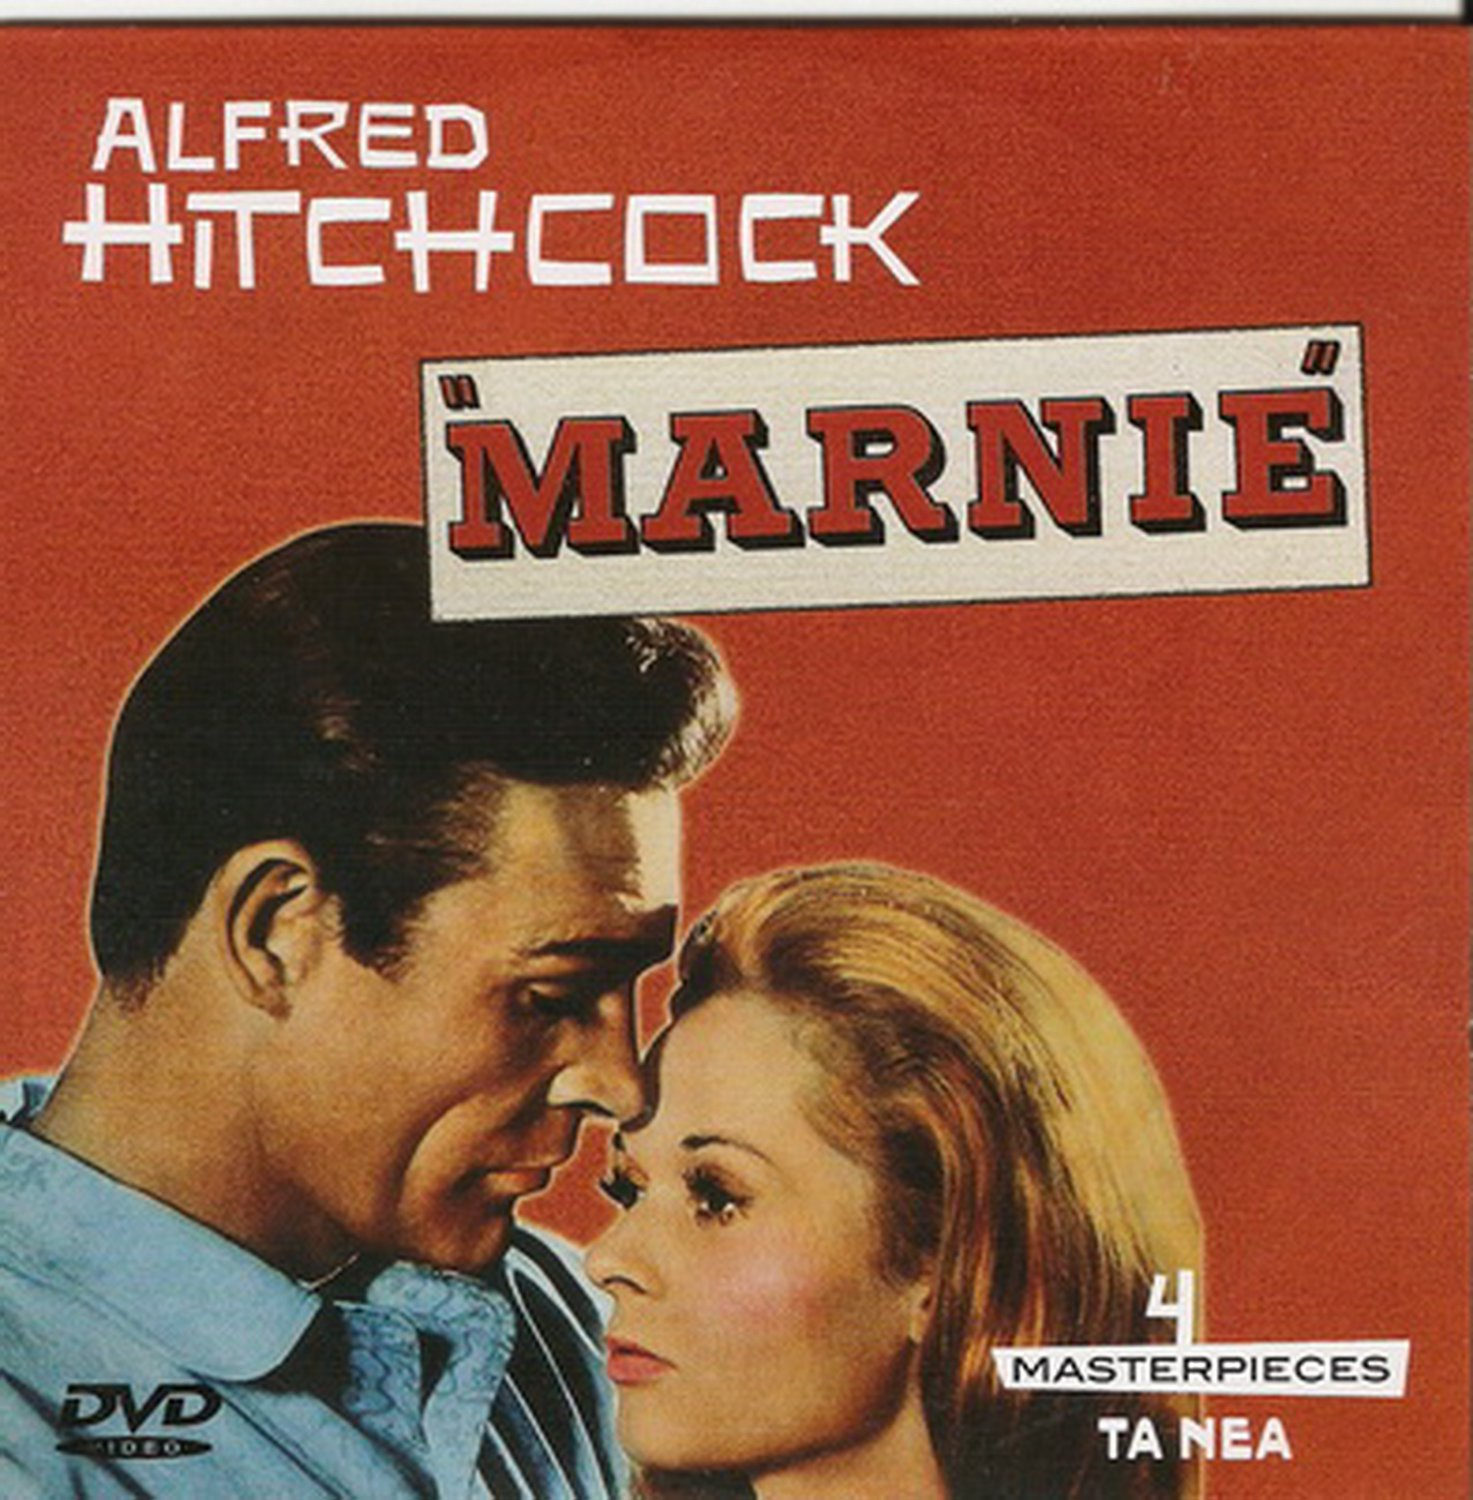 MARNIE Tippi Hedren Sean Connery Louise Latham Alfred Hitchcock R2 DVD